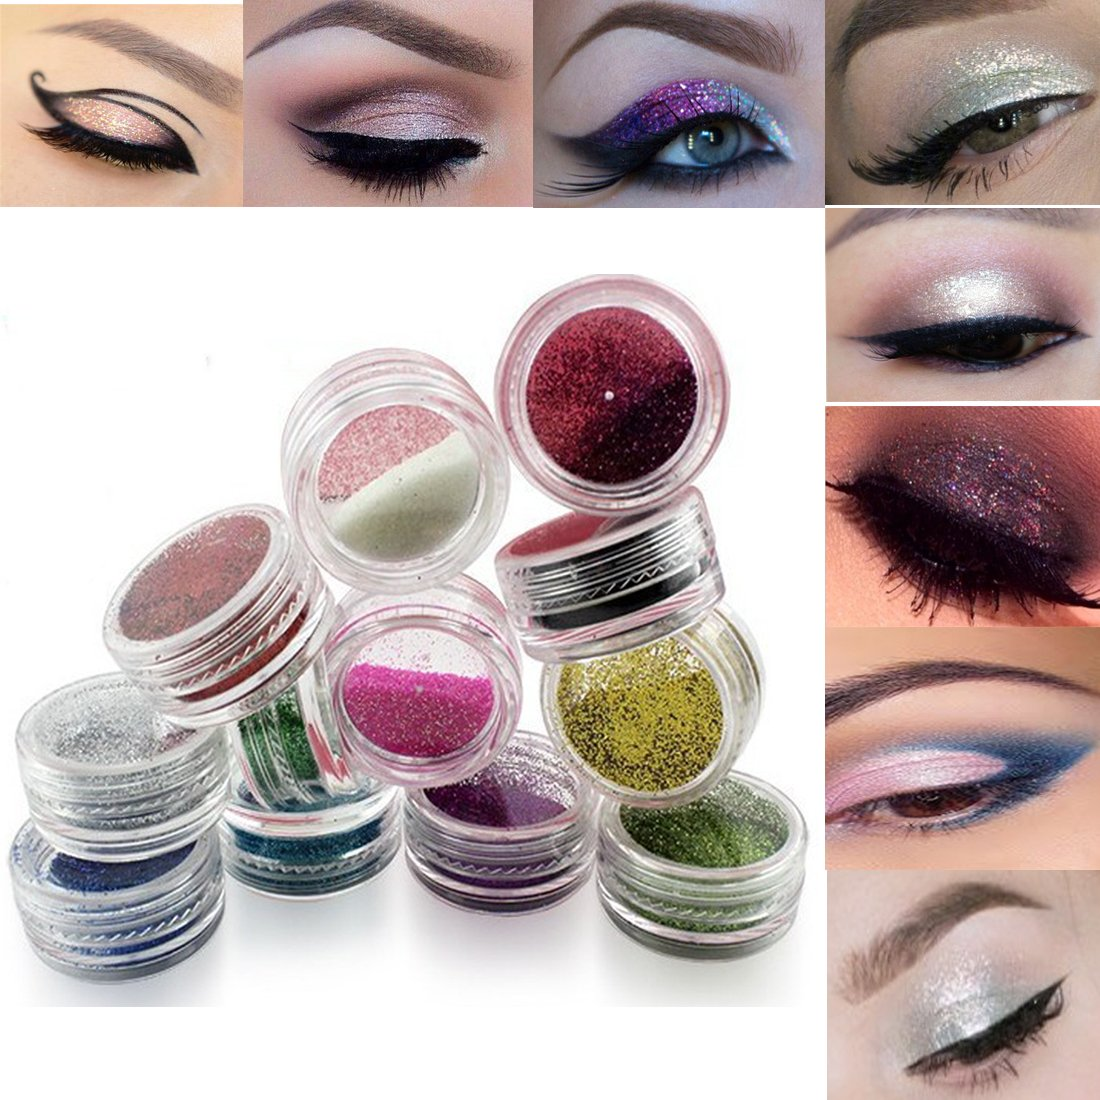 Lookathot Eye Nail Phone Loose Glitter Powder -12/24/45 Pcs Mixed Colors Shimmer Mineral Eye Shadow Dust Powder Makeup Party Cosmetic Set EP01-12-2